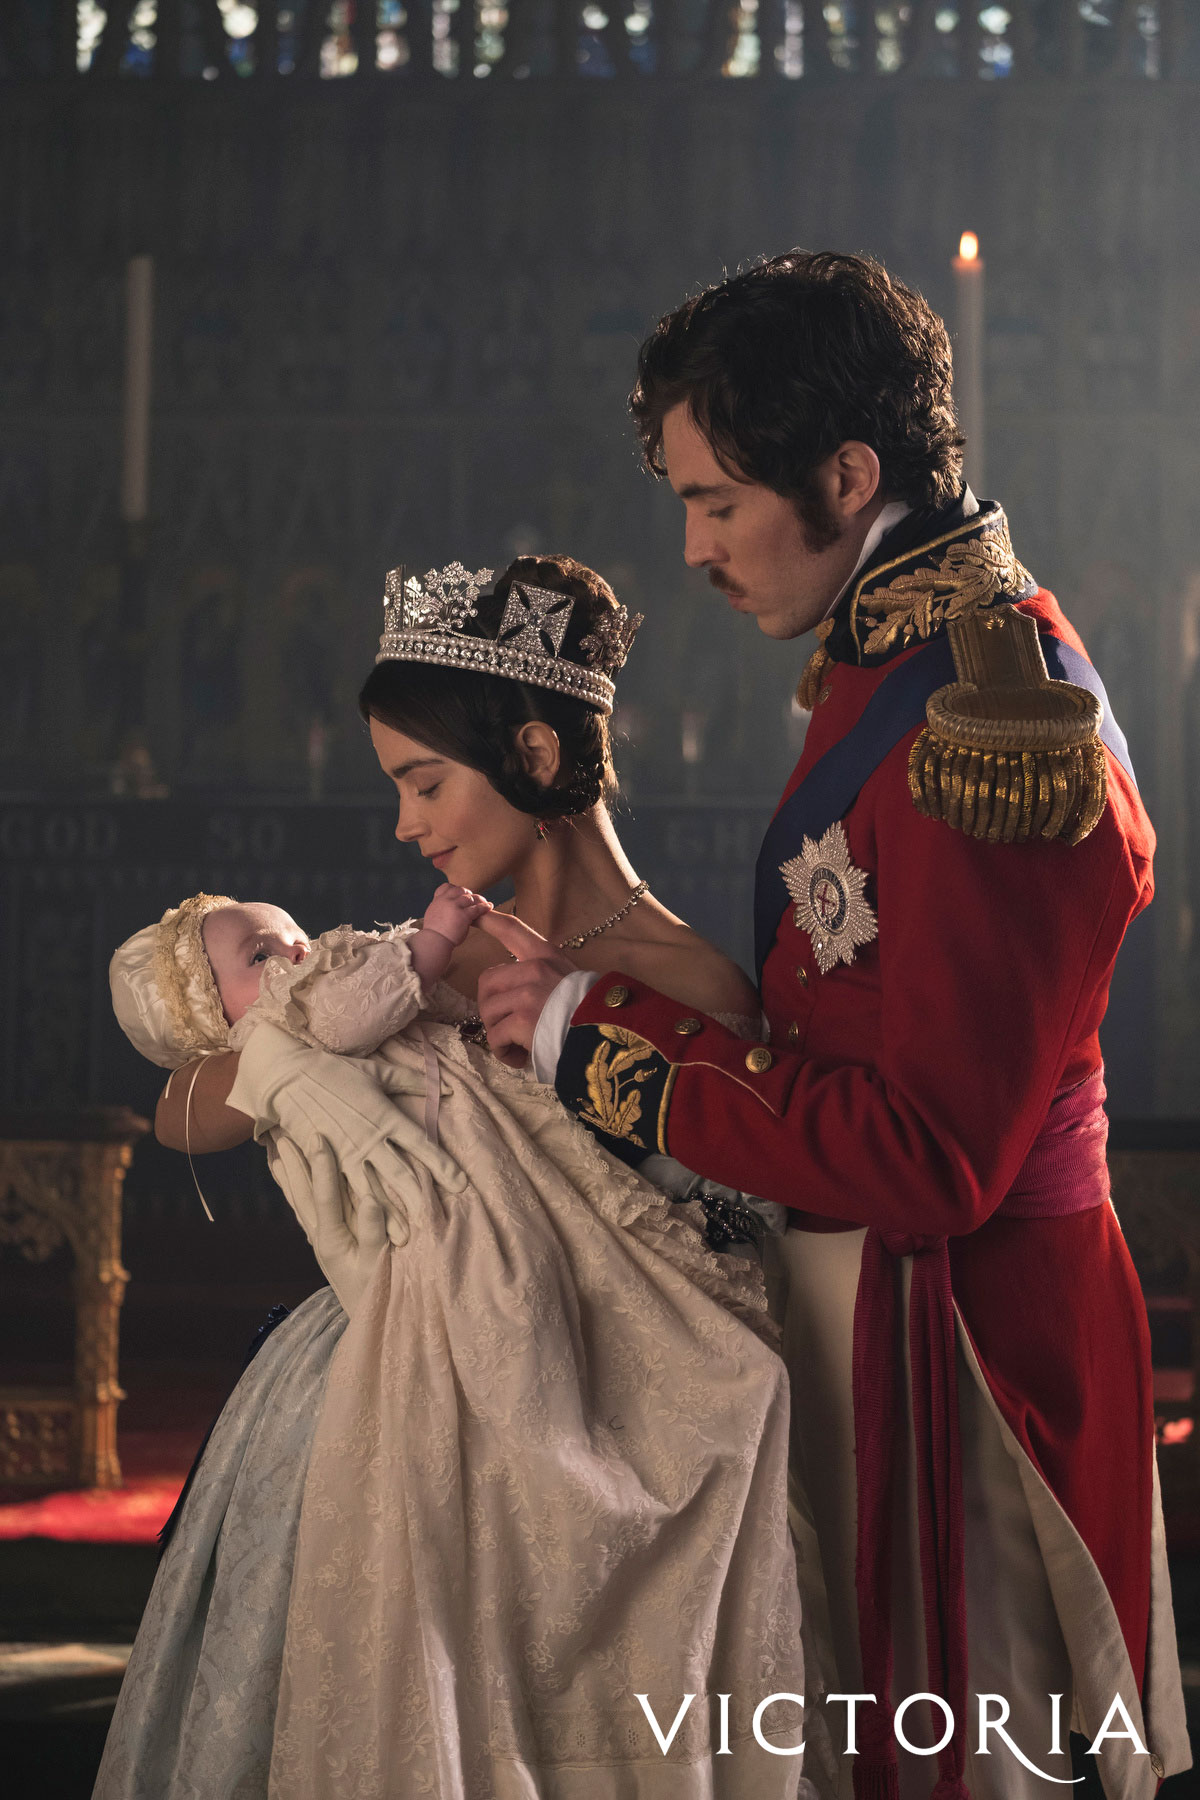 Victoria Season 2 - First Look